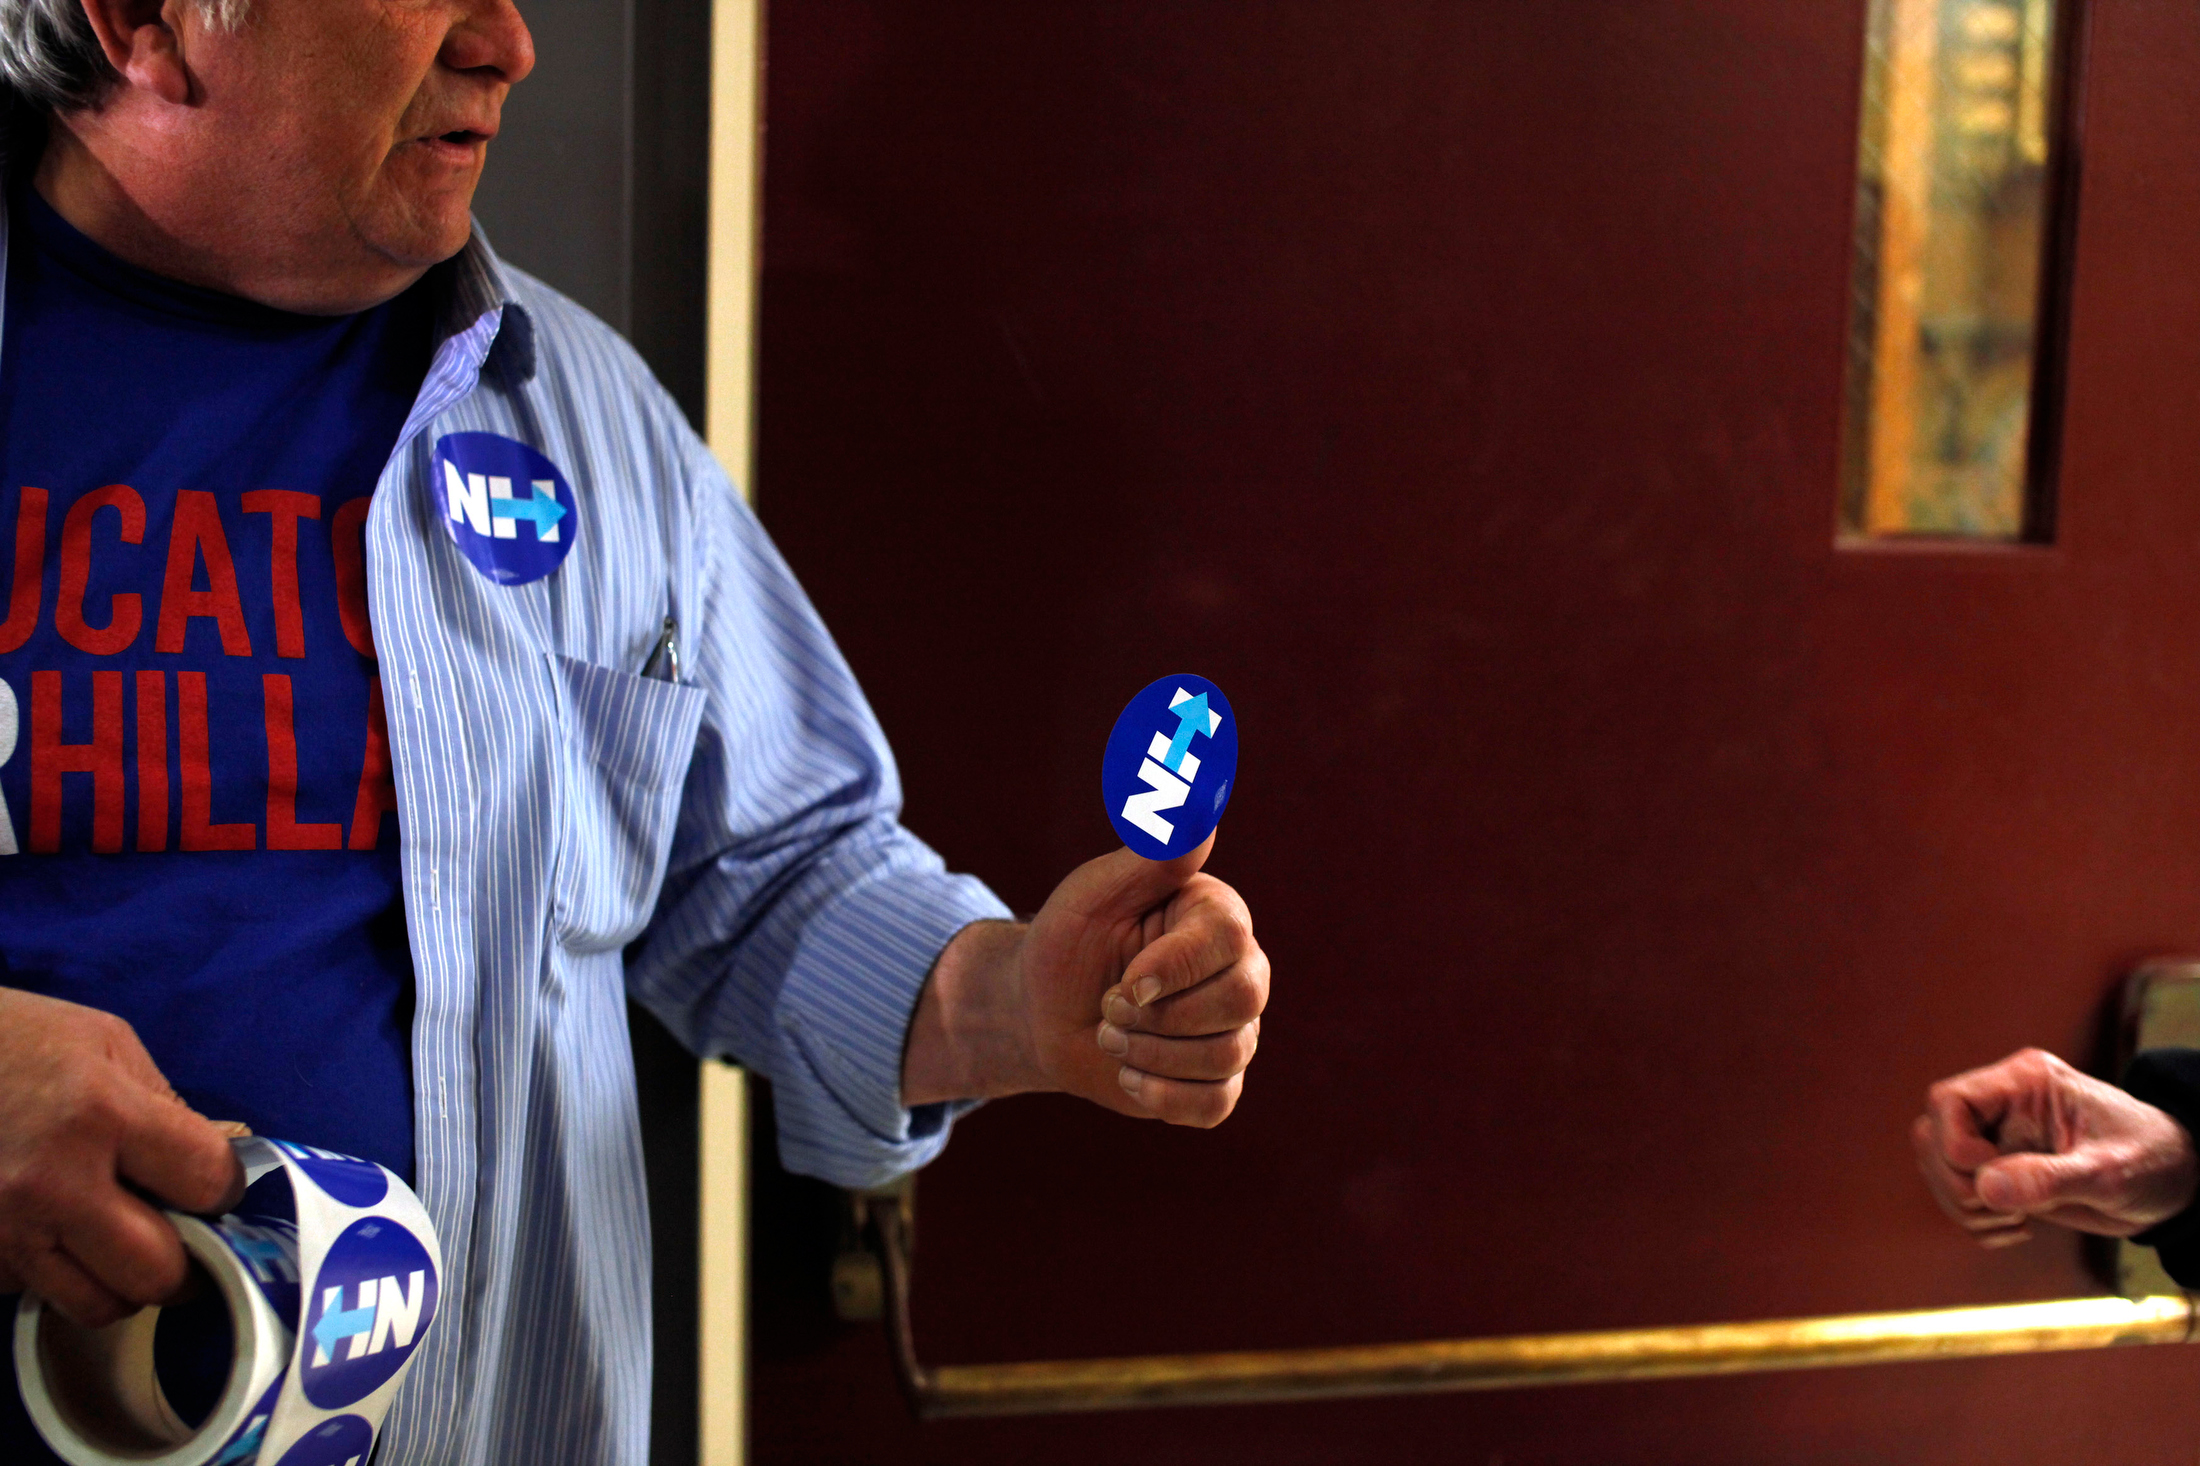 James Mills (L) a volunteer for Democratic presidential candidate Hillary Clinton, hands out stickers before a Get Out The Vote rally at Alvirne High School in Hudson, New Hampshire on February 8, 2016. The event is Hillary Clinton's final pitch to potential voters before the New Hampshire Primary on Tuesday.